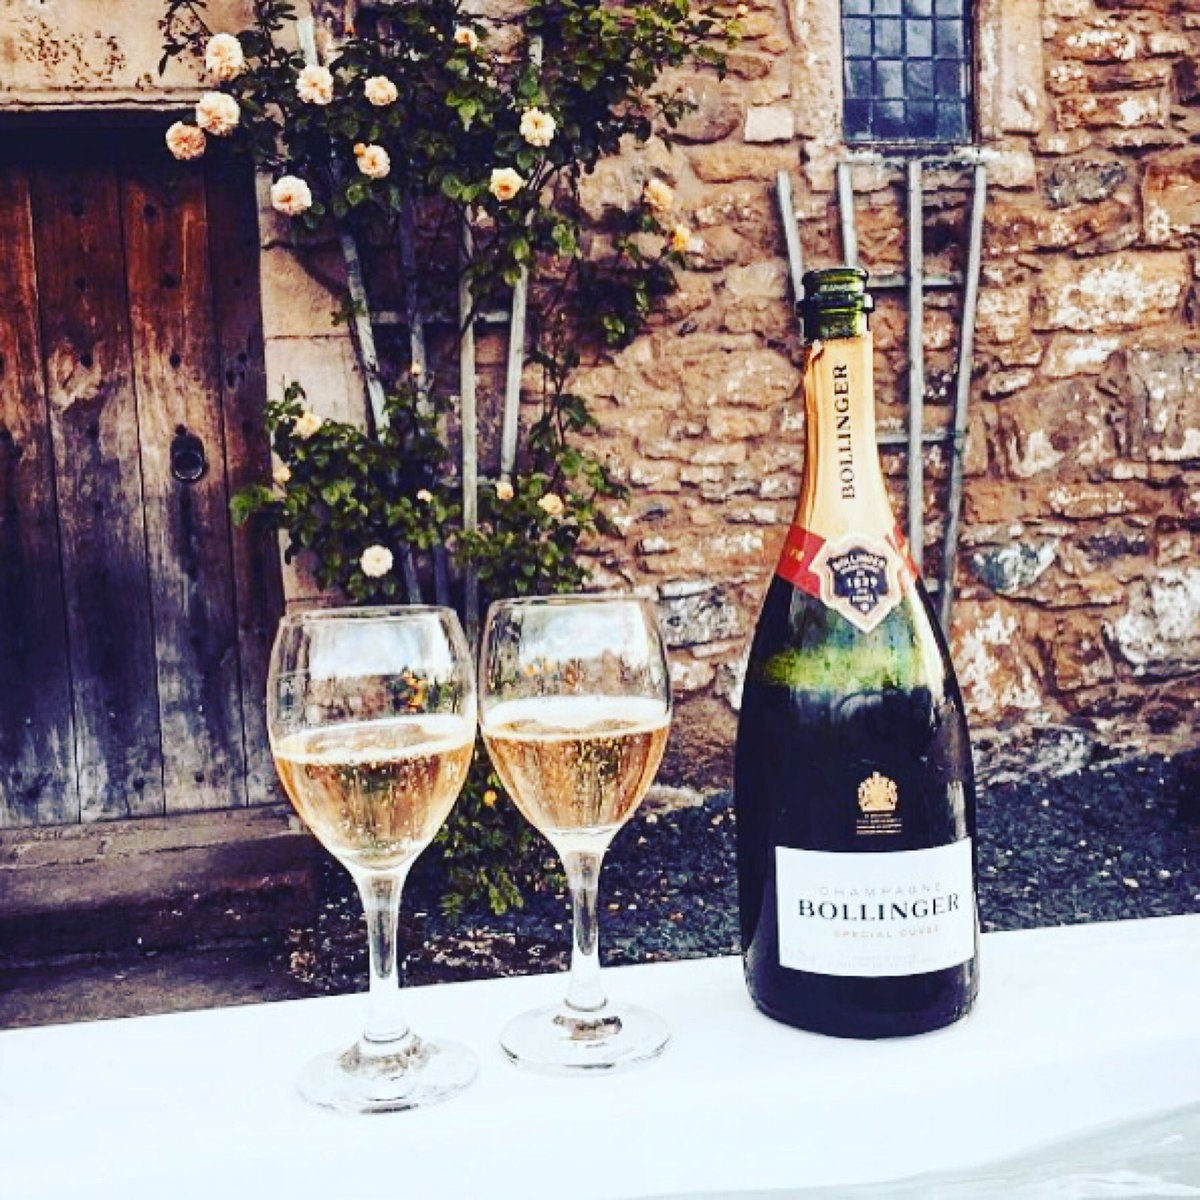 #Regram @champagne_bollinger ・・・ Perfect summer afternoon. <br>http://pic.twitter.com/I3PoUNwf2x